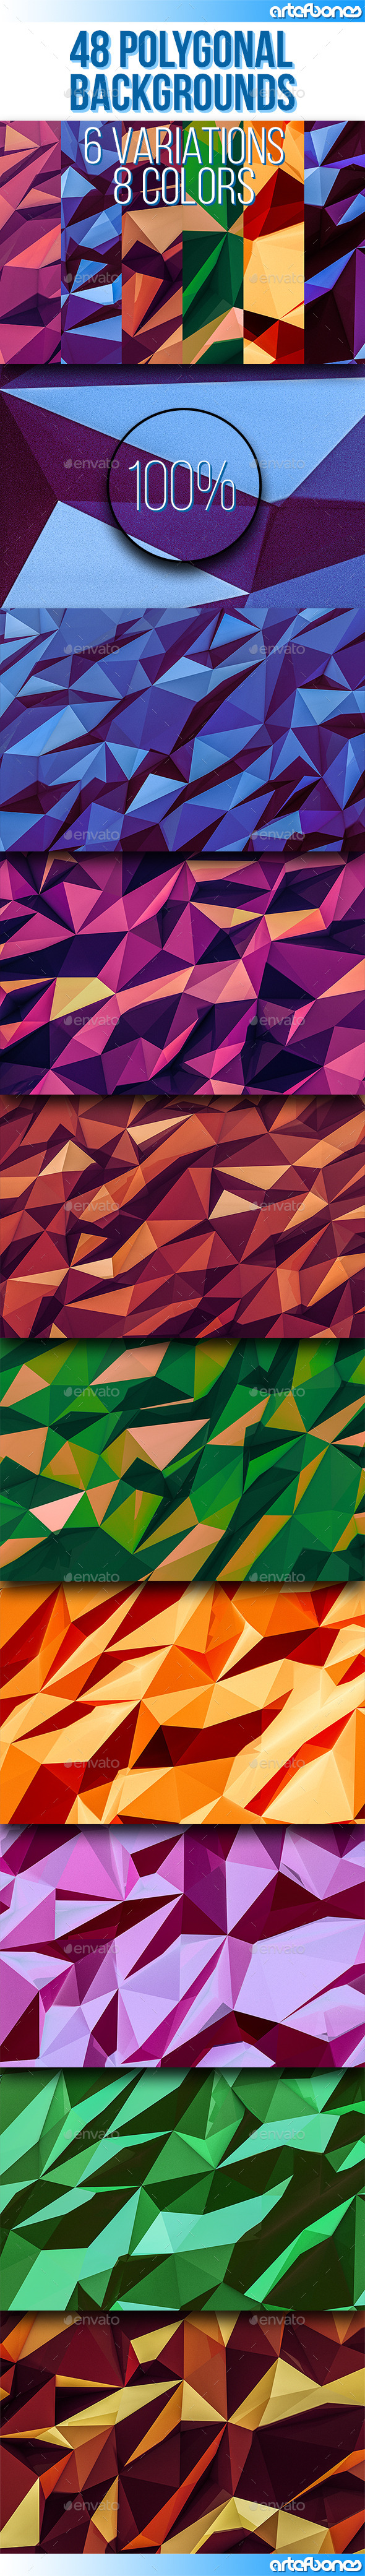 GraphicRiver 48 Polygonal Backgrounds Vol.2 9426637